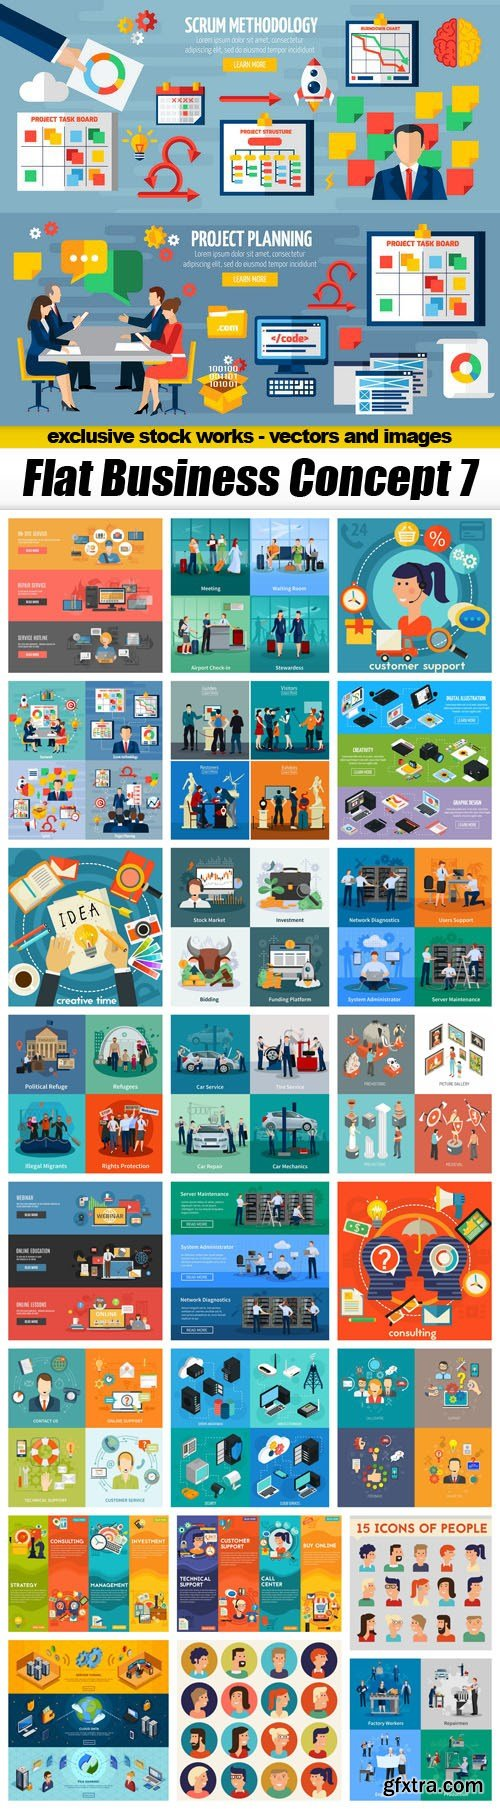 Flat Business Concept 7 - 25xEPS